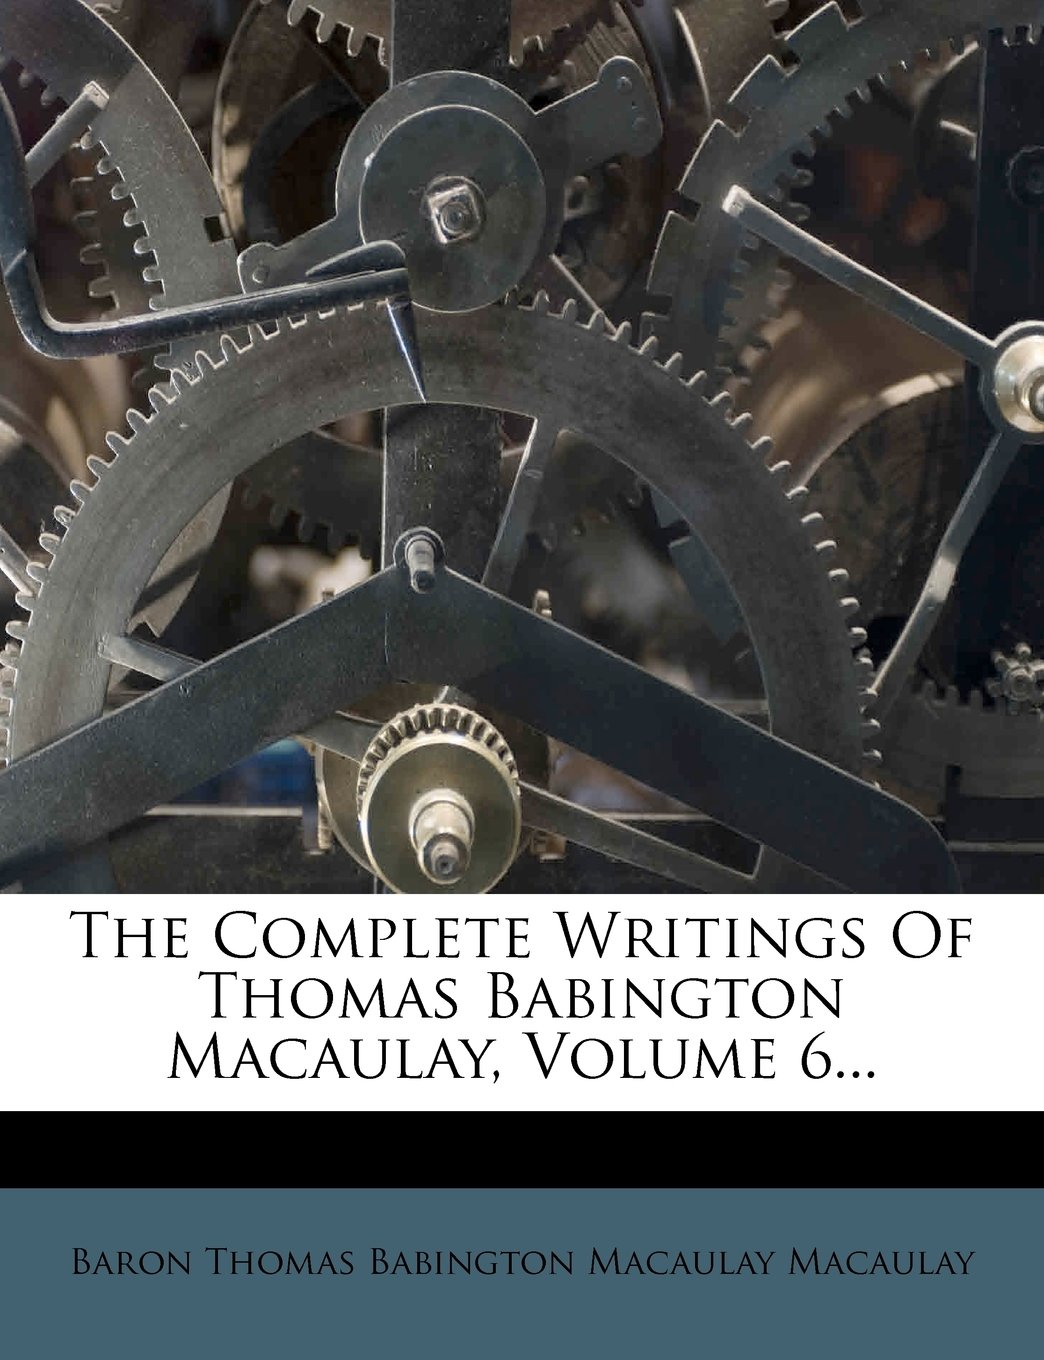 Read Online The Complete Writings Of Thomas Babington Macaulay, Volume 6... ebook